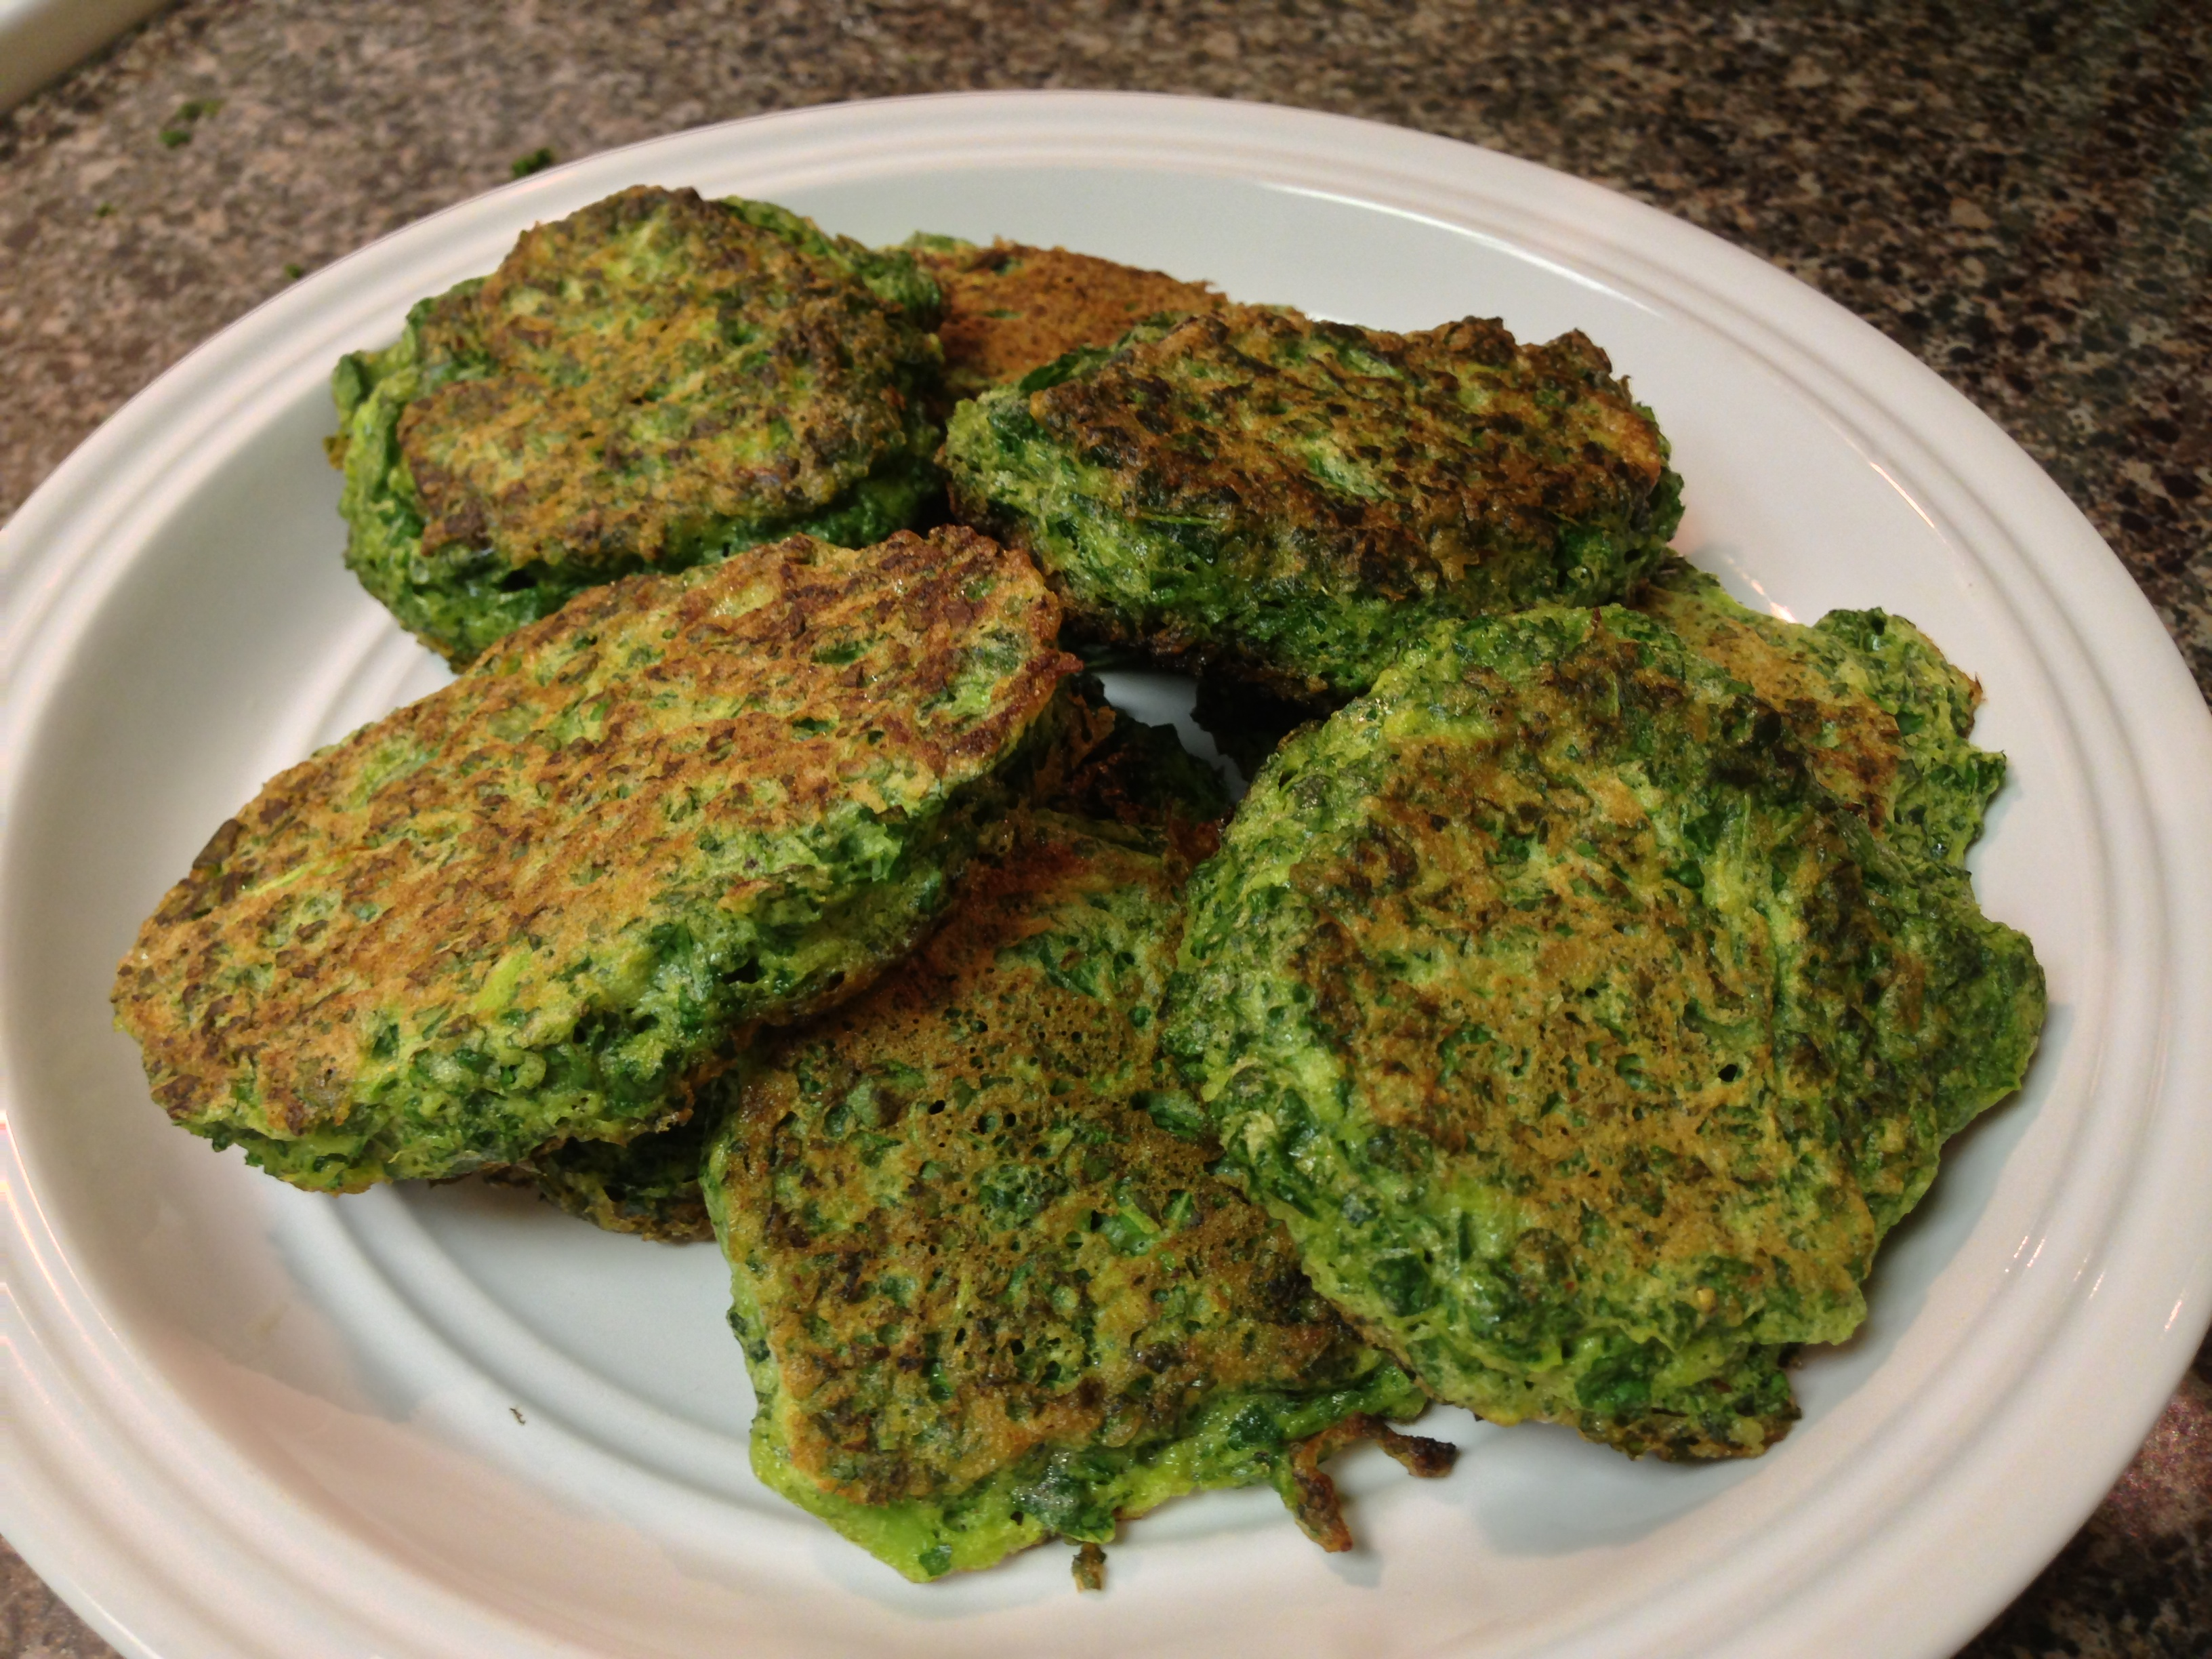 best way to cook kale to keep nutrients